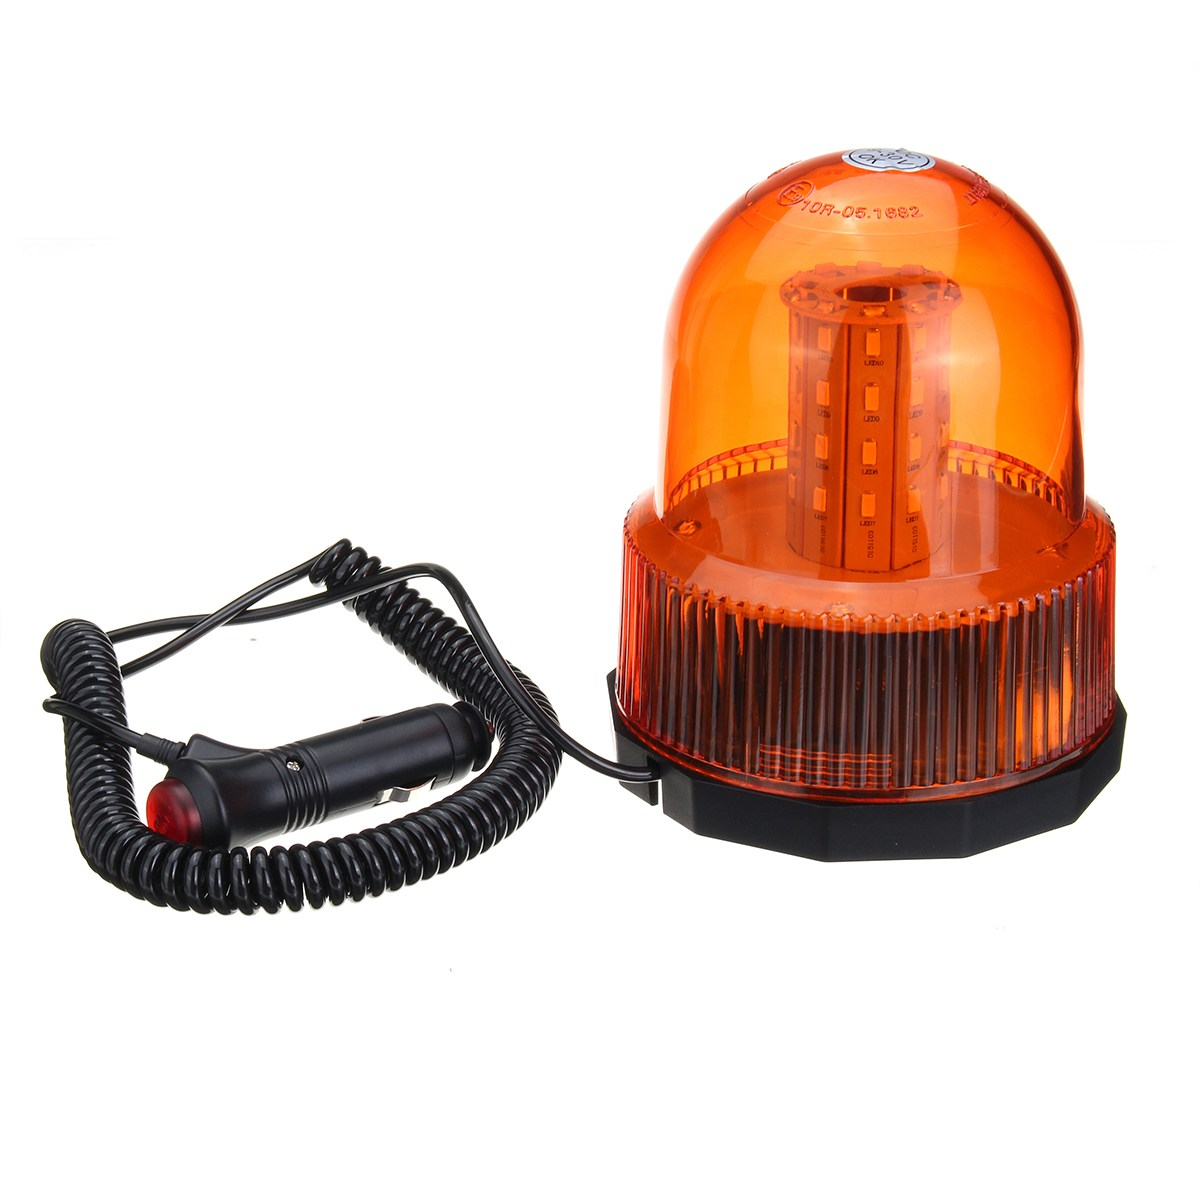 NEW Safurance 40 LED Magnetic Mount Rotating Flashing Amber Dome Beacon Recovery Warning Light Roadway Safety 8 led flashing yellow light caution warning lamp with magnetic mount holder